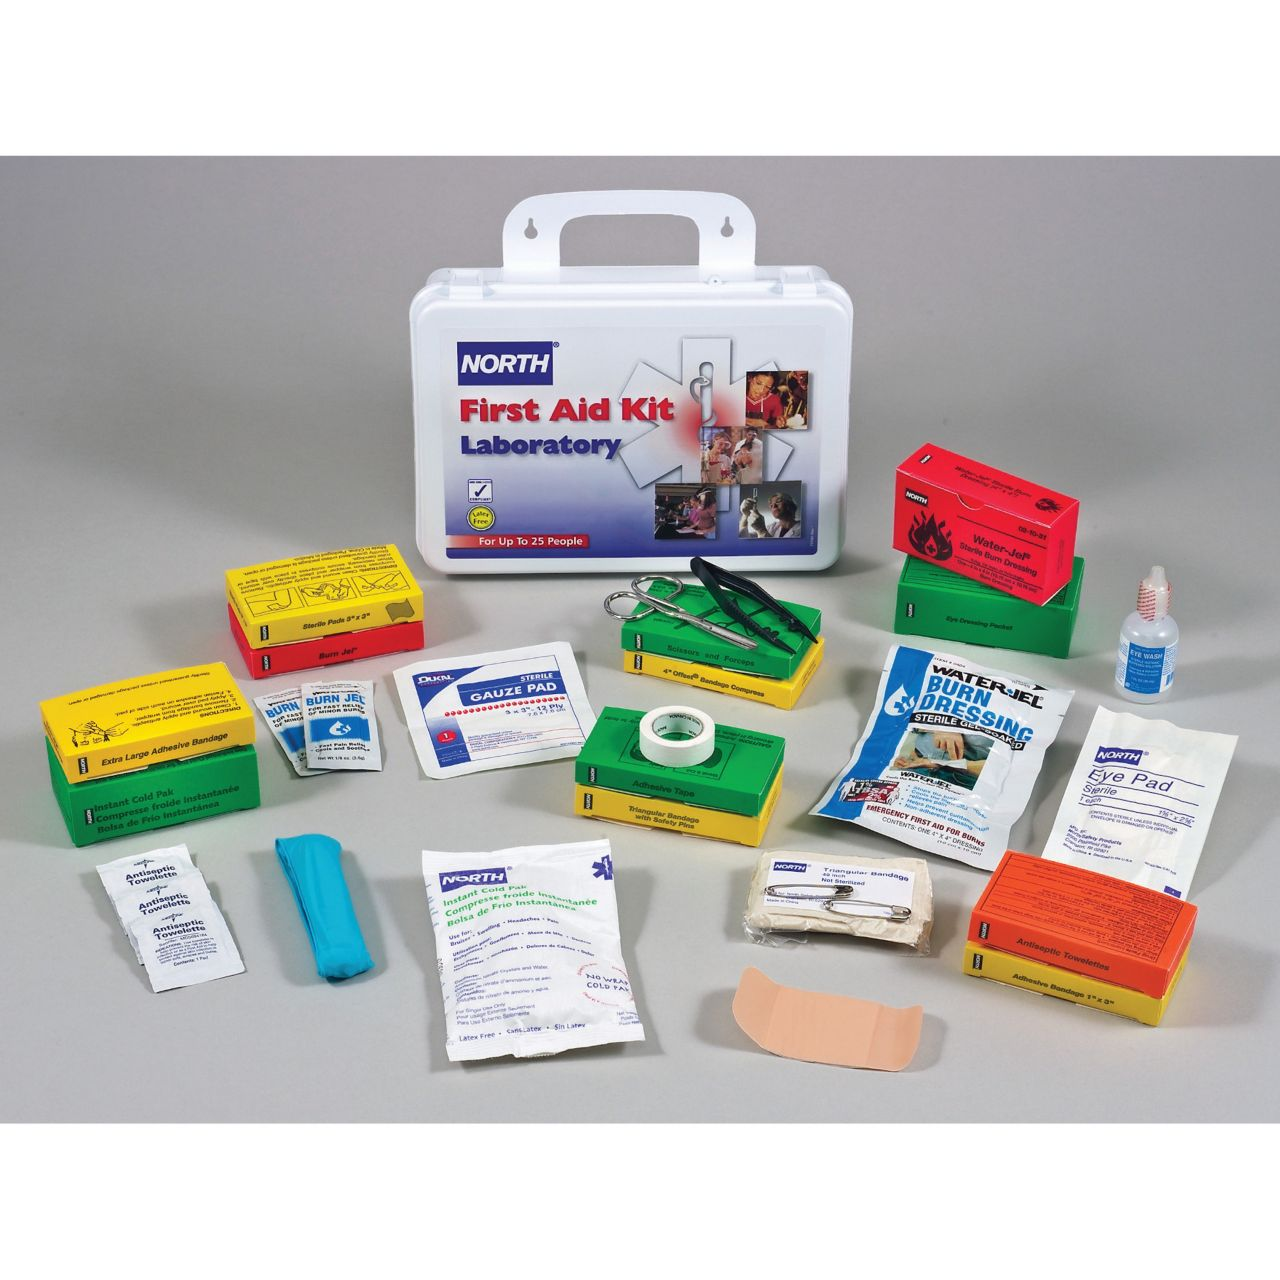 HS_019750-0034l_-_specialty_first_aid_kits_north_019750_kit